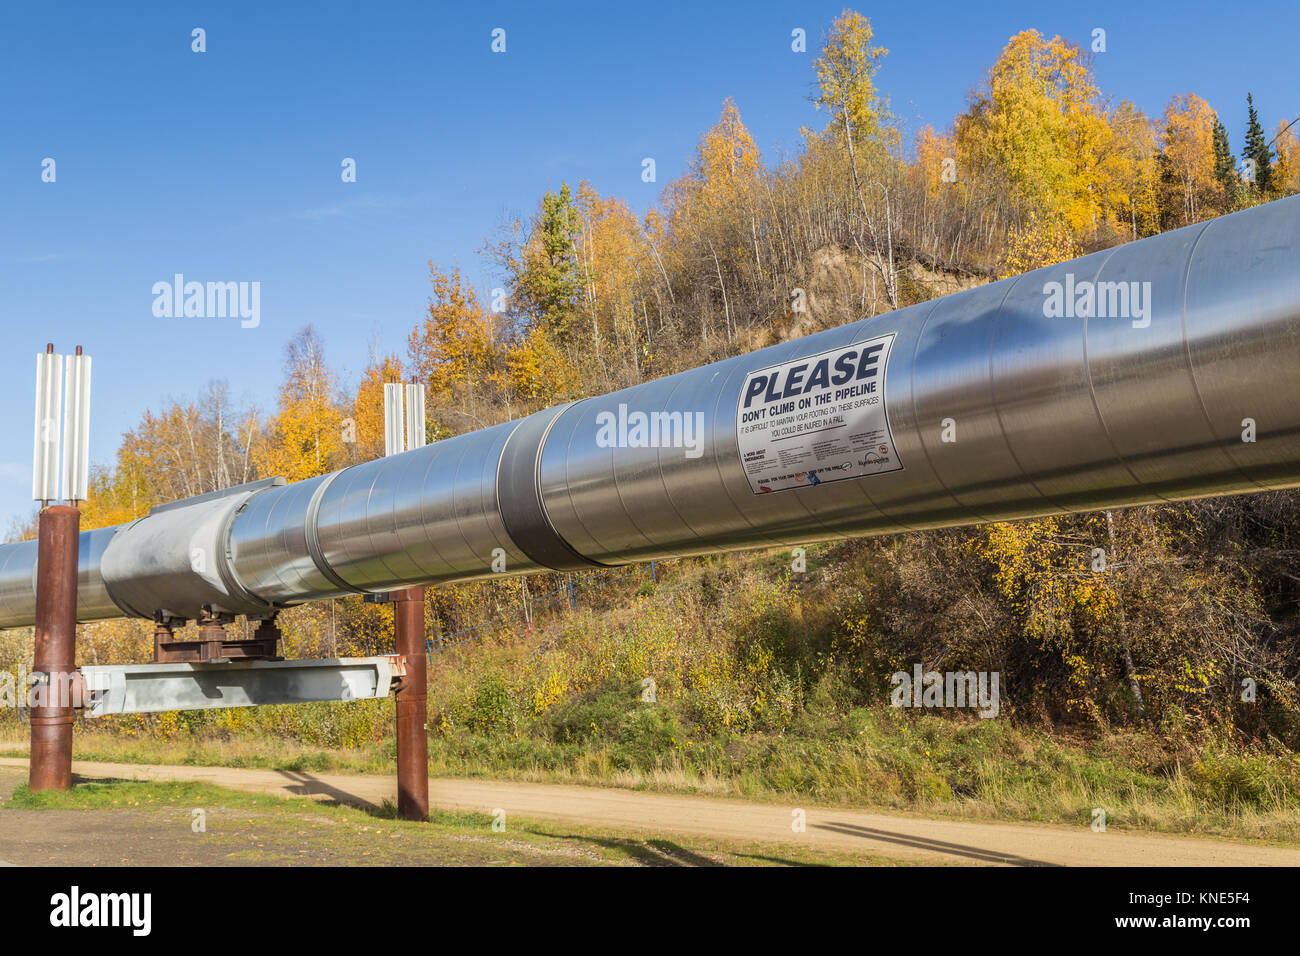 The Trans-Alaska Pipeline System (TAPS) also called the Aleyska Pipeline transports oil 800 miles from Prudhoe Bay - Stock Image